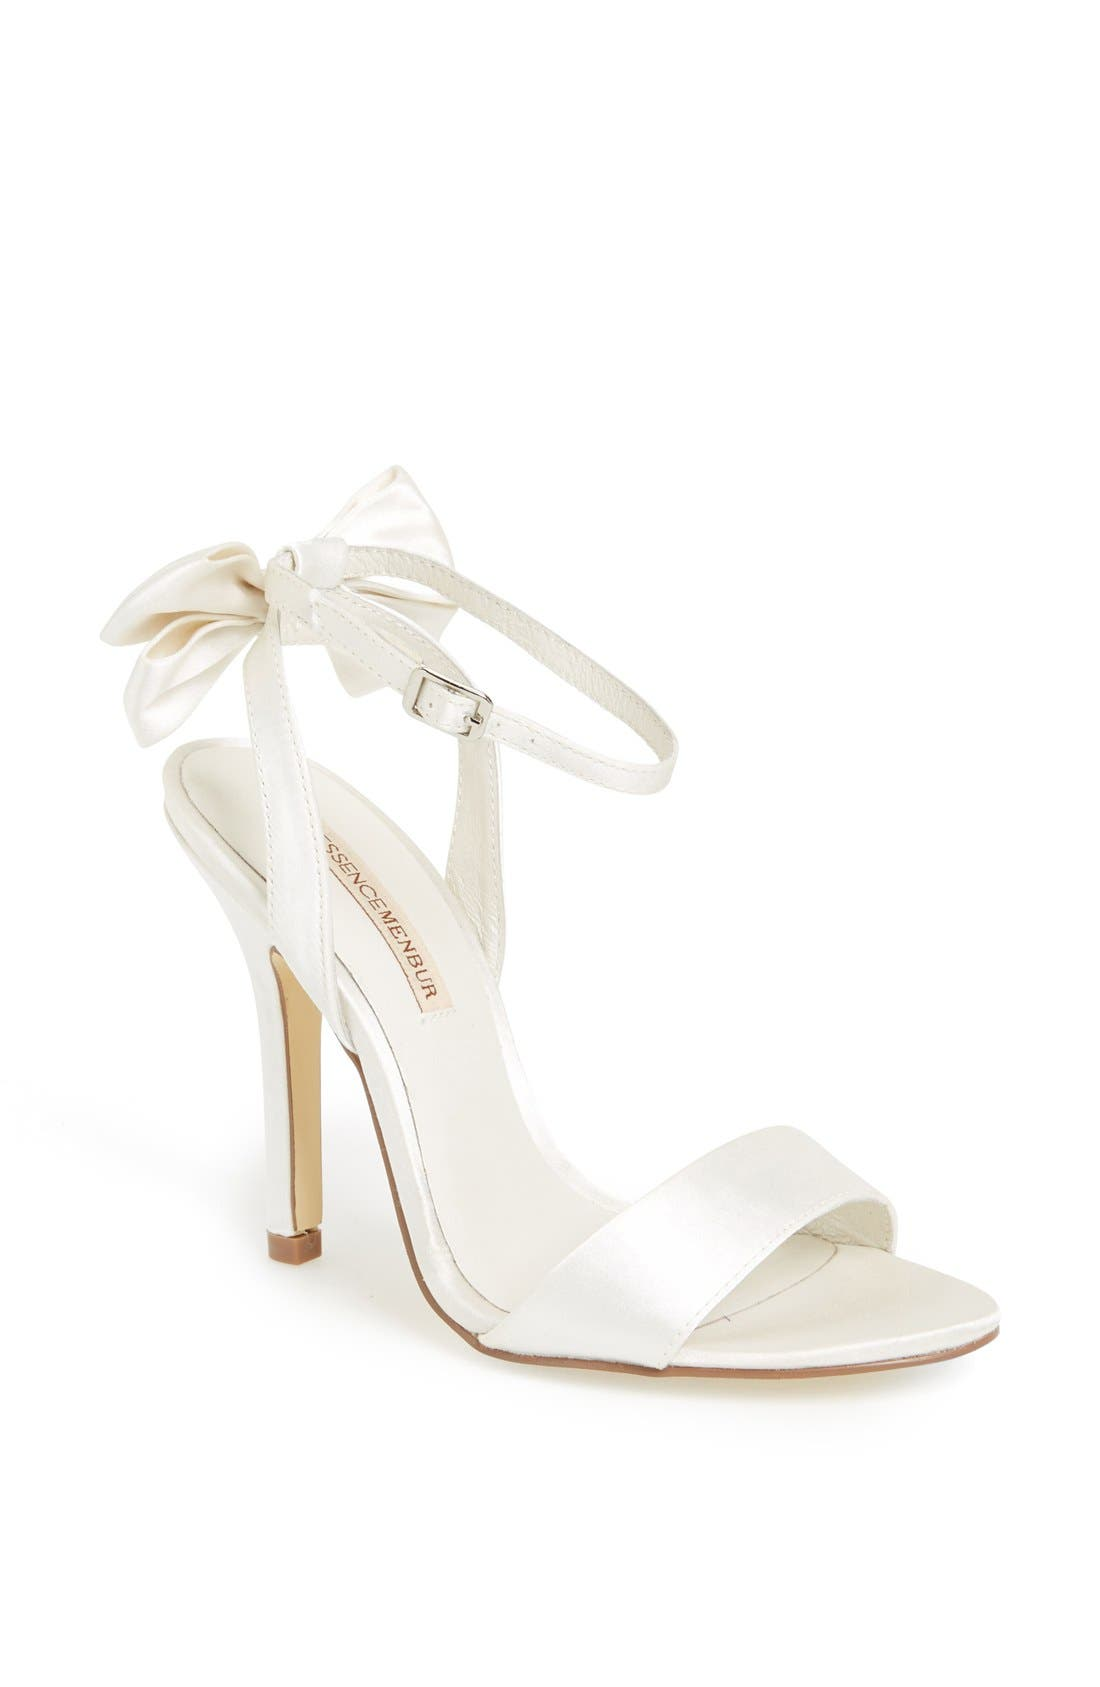 Alternate Image 1 Selected - Menbur 'Milan' Satin Sandal